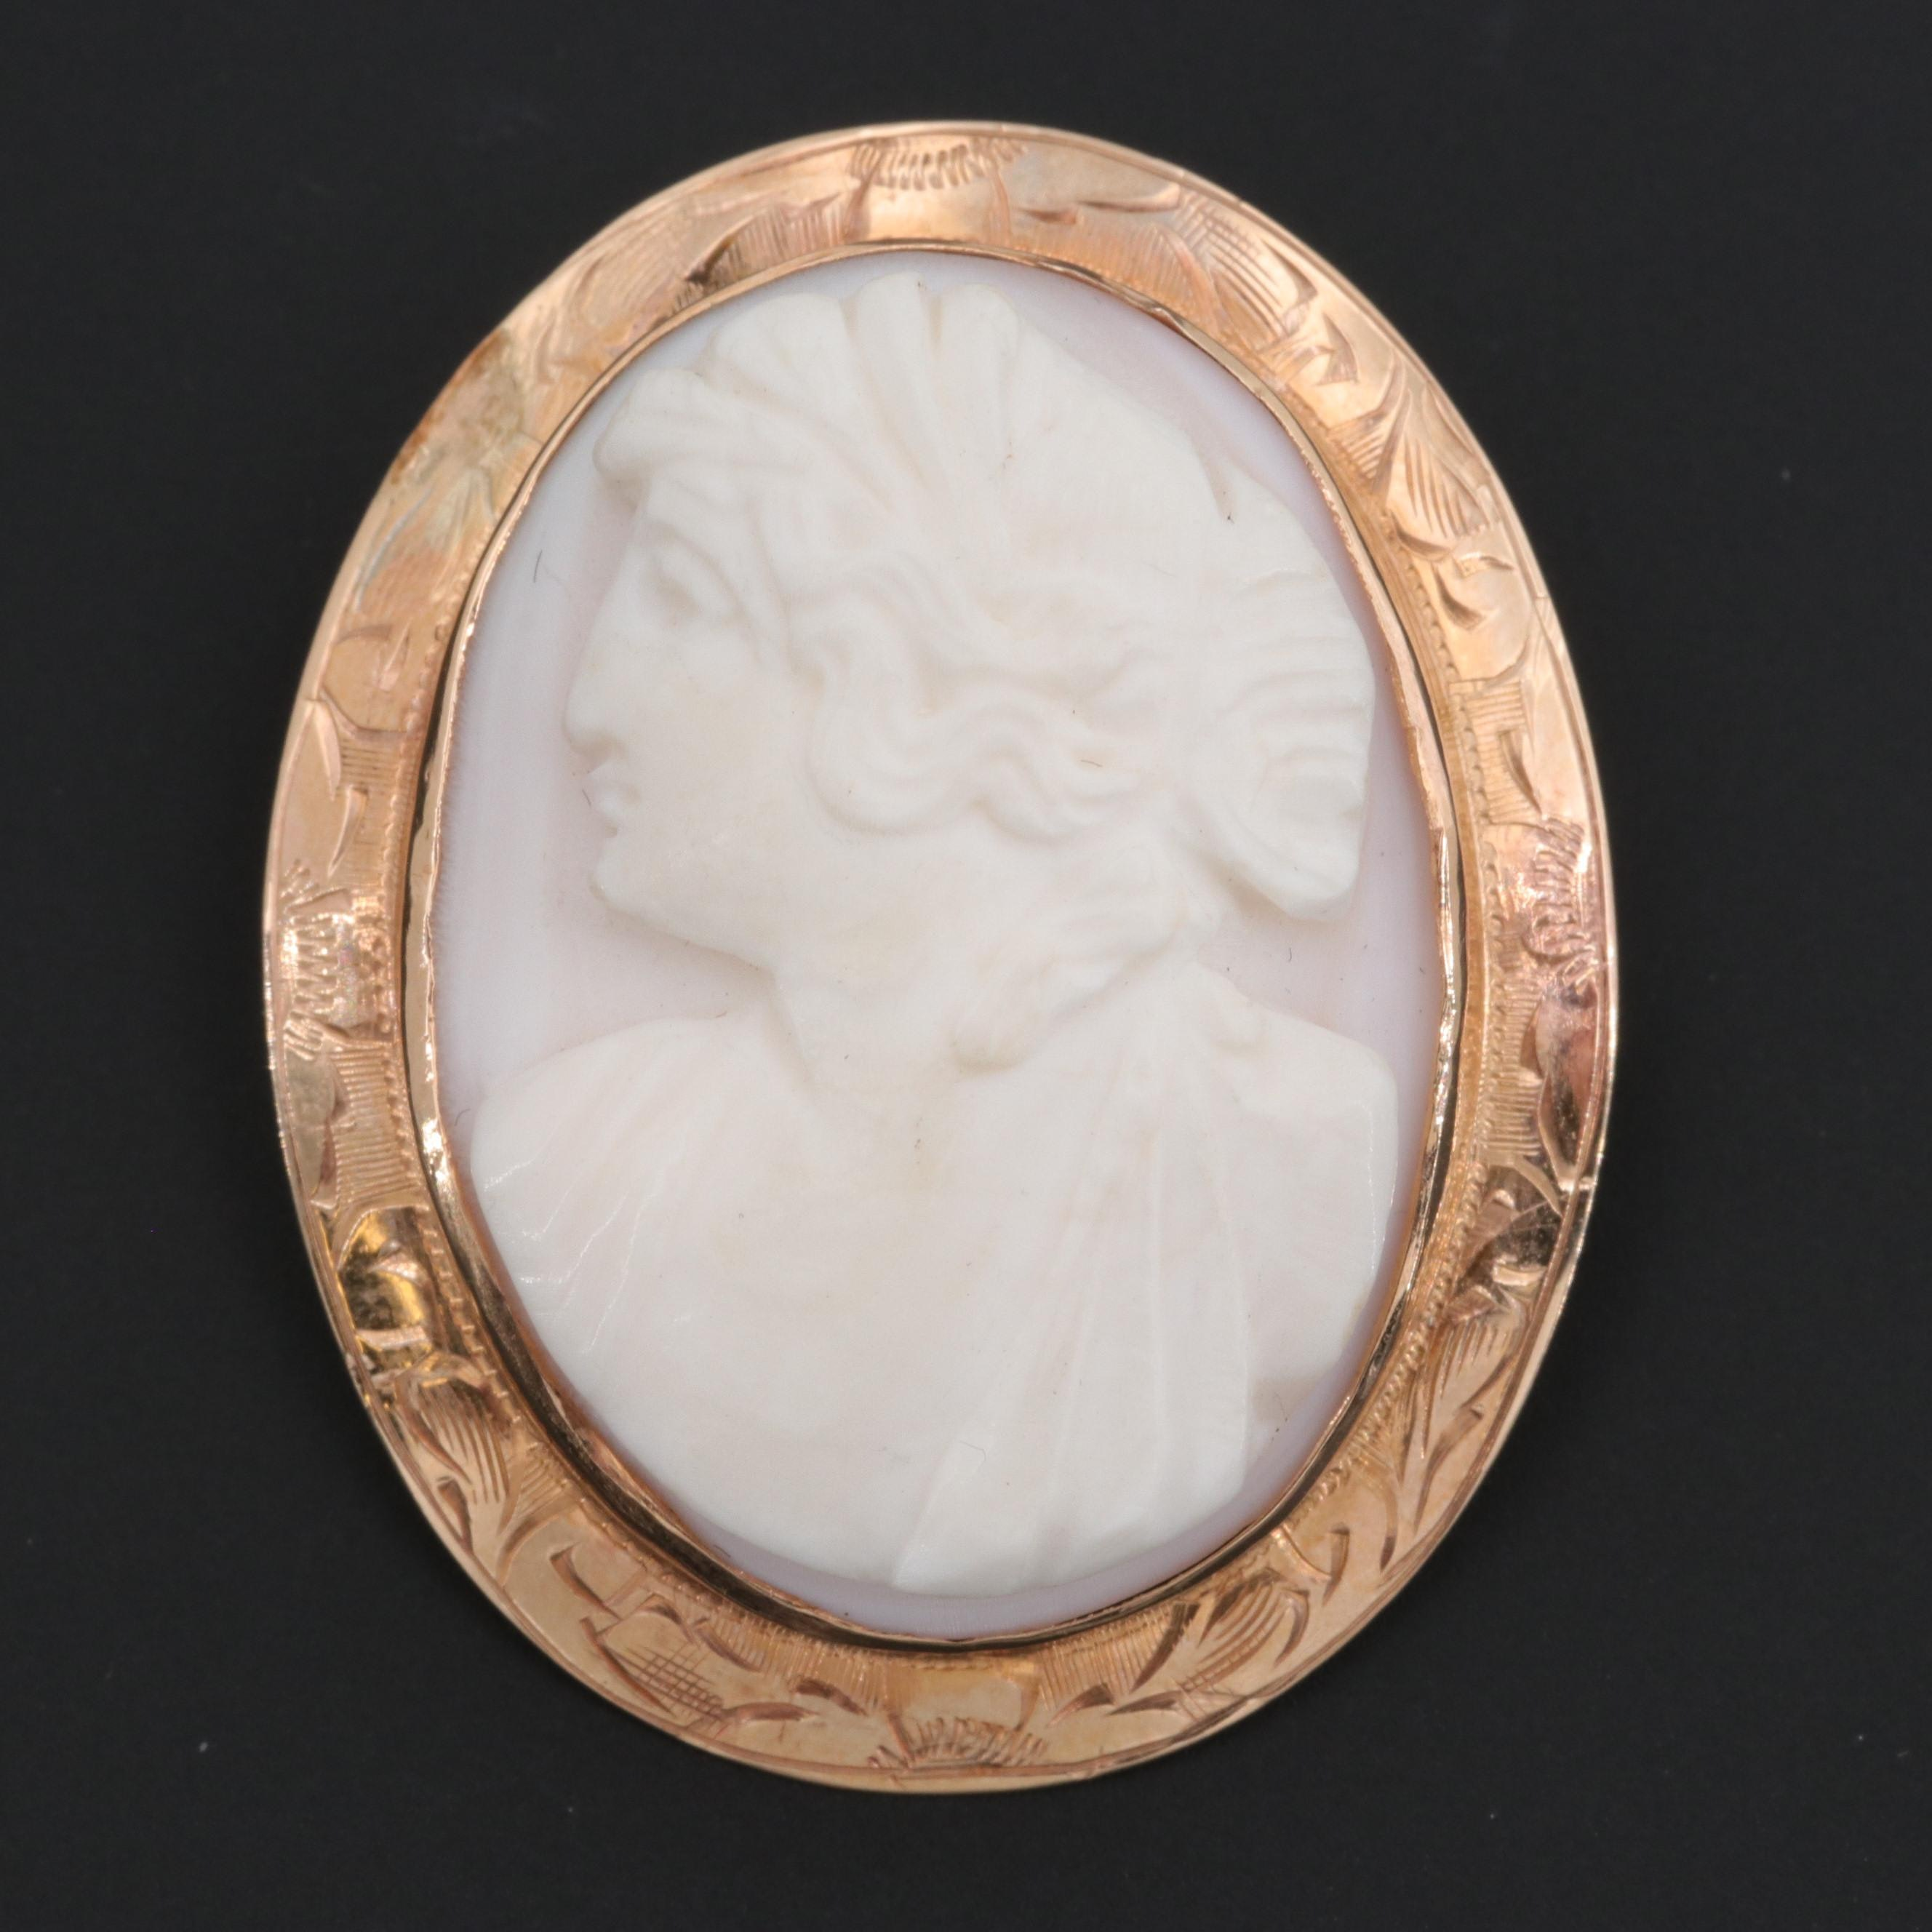 Vintage 10K Yellow Gold Conch Shell Cameo Converter Brooch